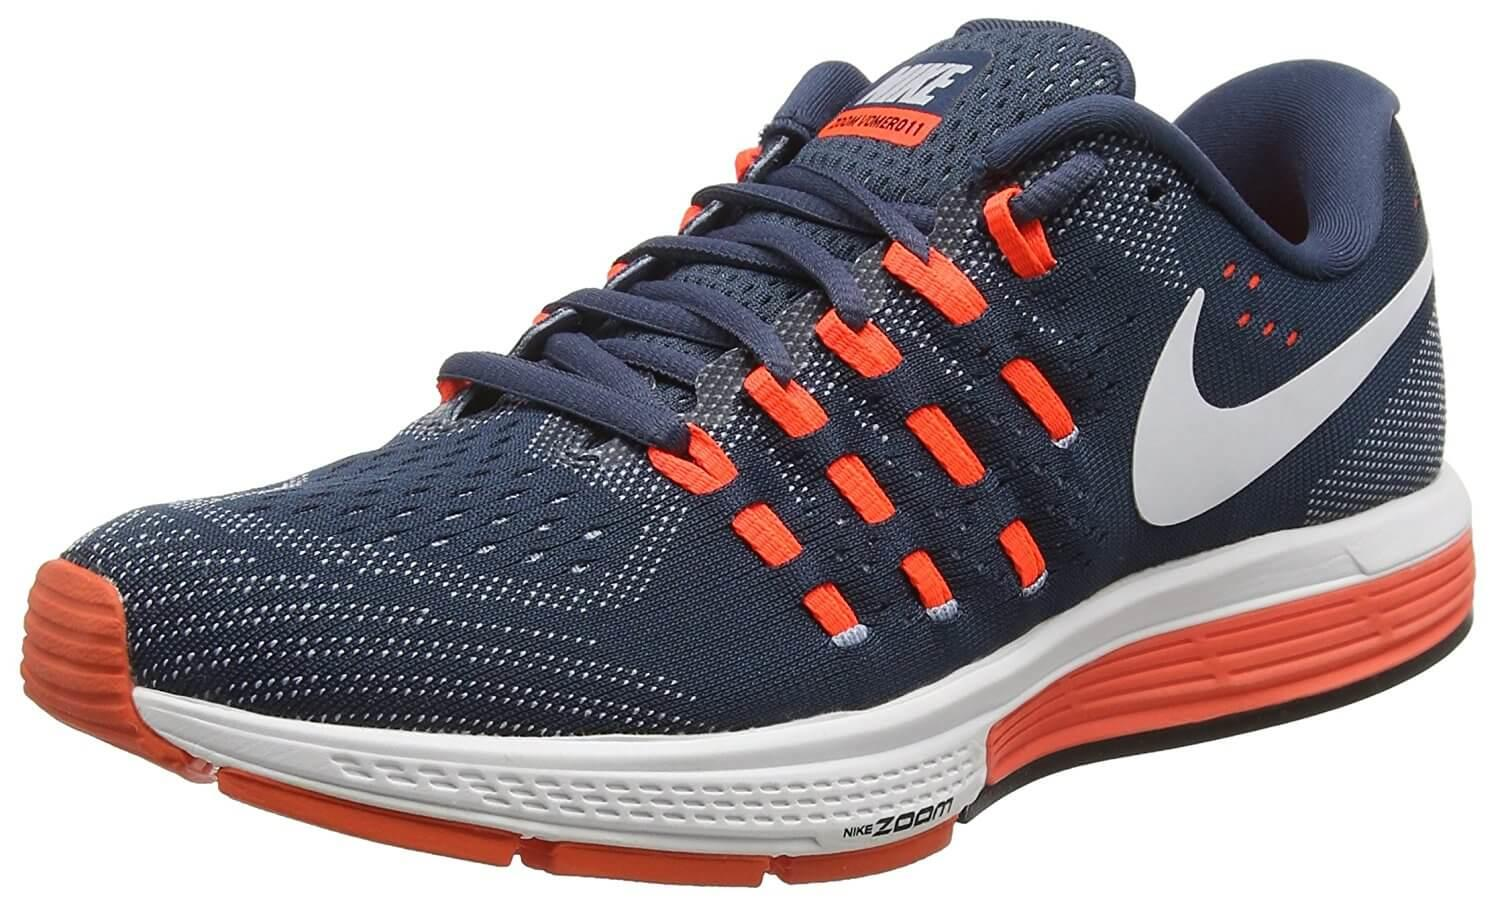 21c09e93edc4 the Nike Air Zoom Vomero 11 is a durable running shoe that will last for  many ...